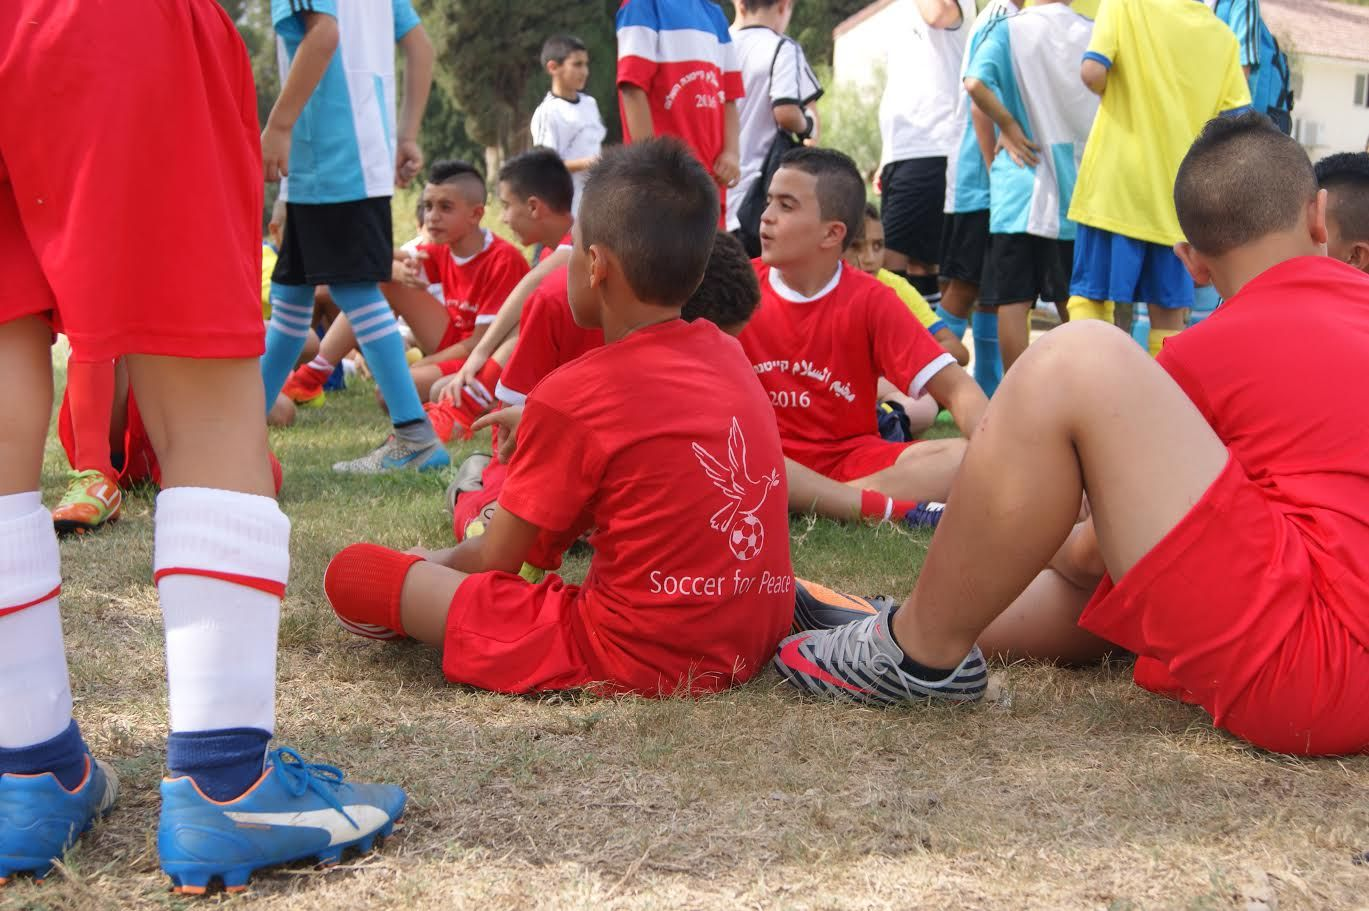 The participants at the Soccer for Peace summer camp were split into different teams, all representing different countries in the world